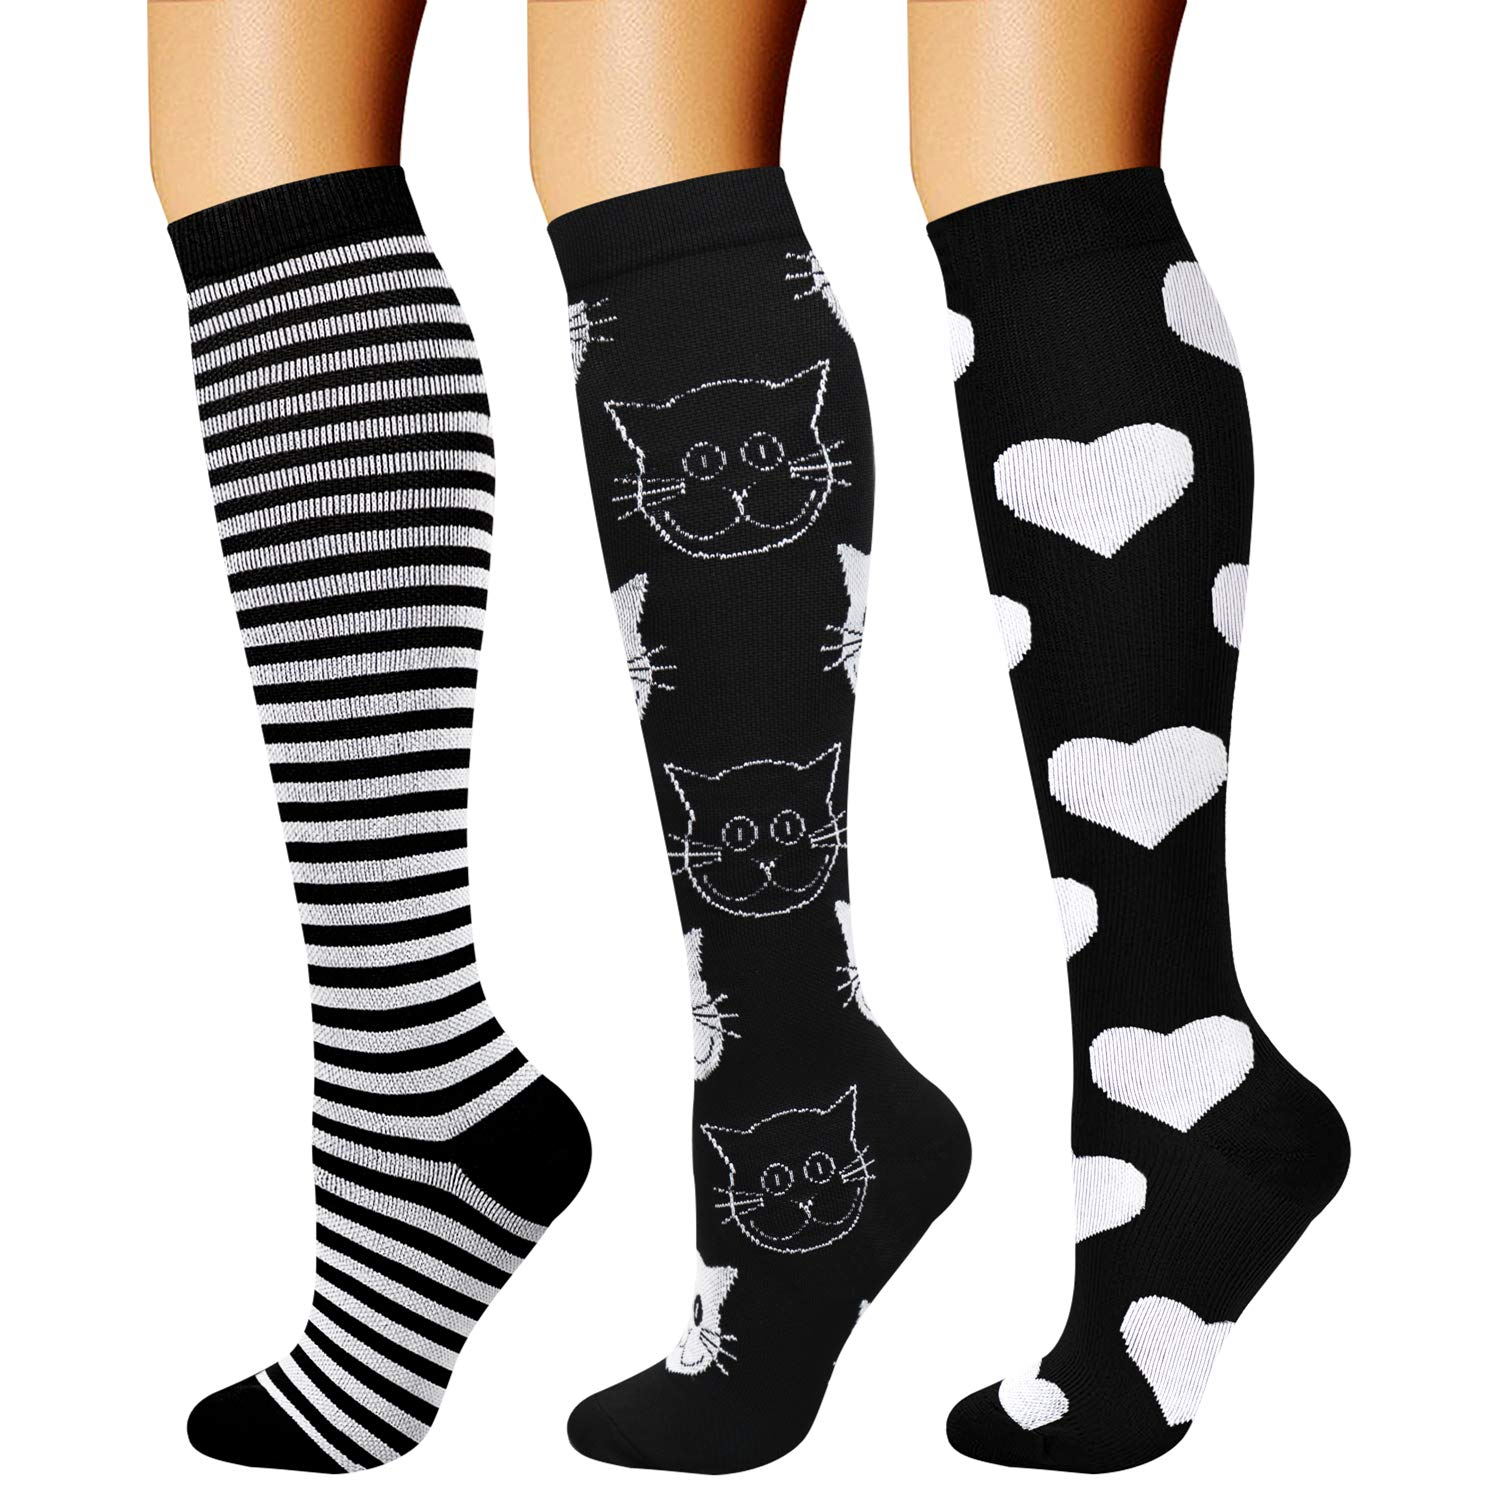 CHARMKING Compression Socks (3 Pairs) 15-20 mmHg is Best Athletic & Medical for Men & Women, Running, Flight, Travel, Nurses, Edema - Boost Performance, Blood Circulation & Recovery (S/M, Assorted 30) by CHARMKING